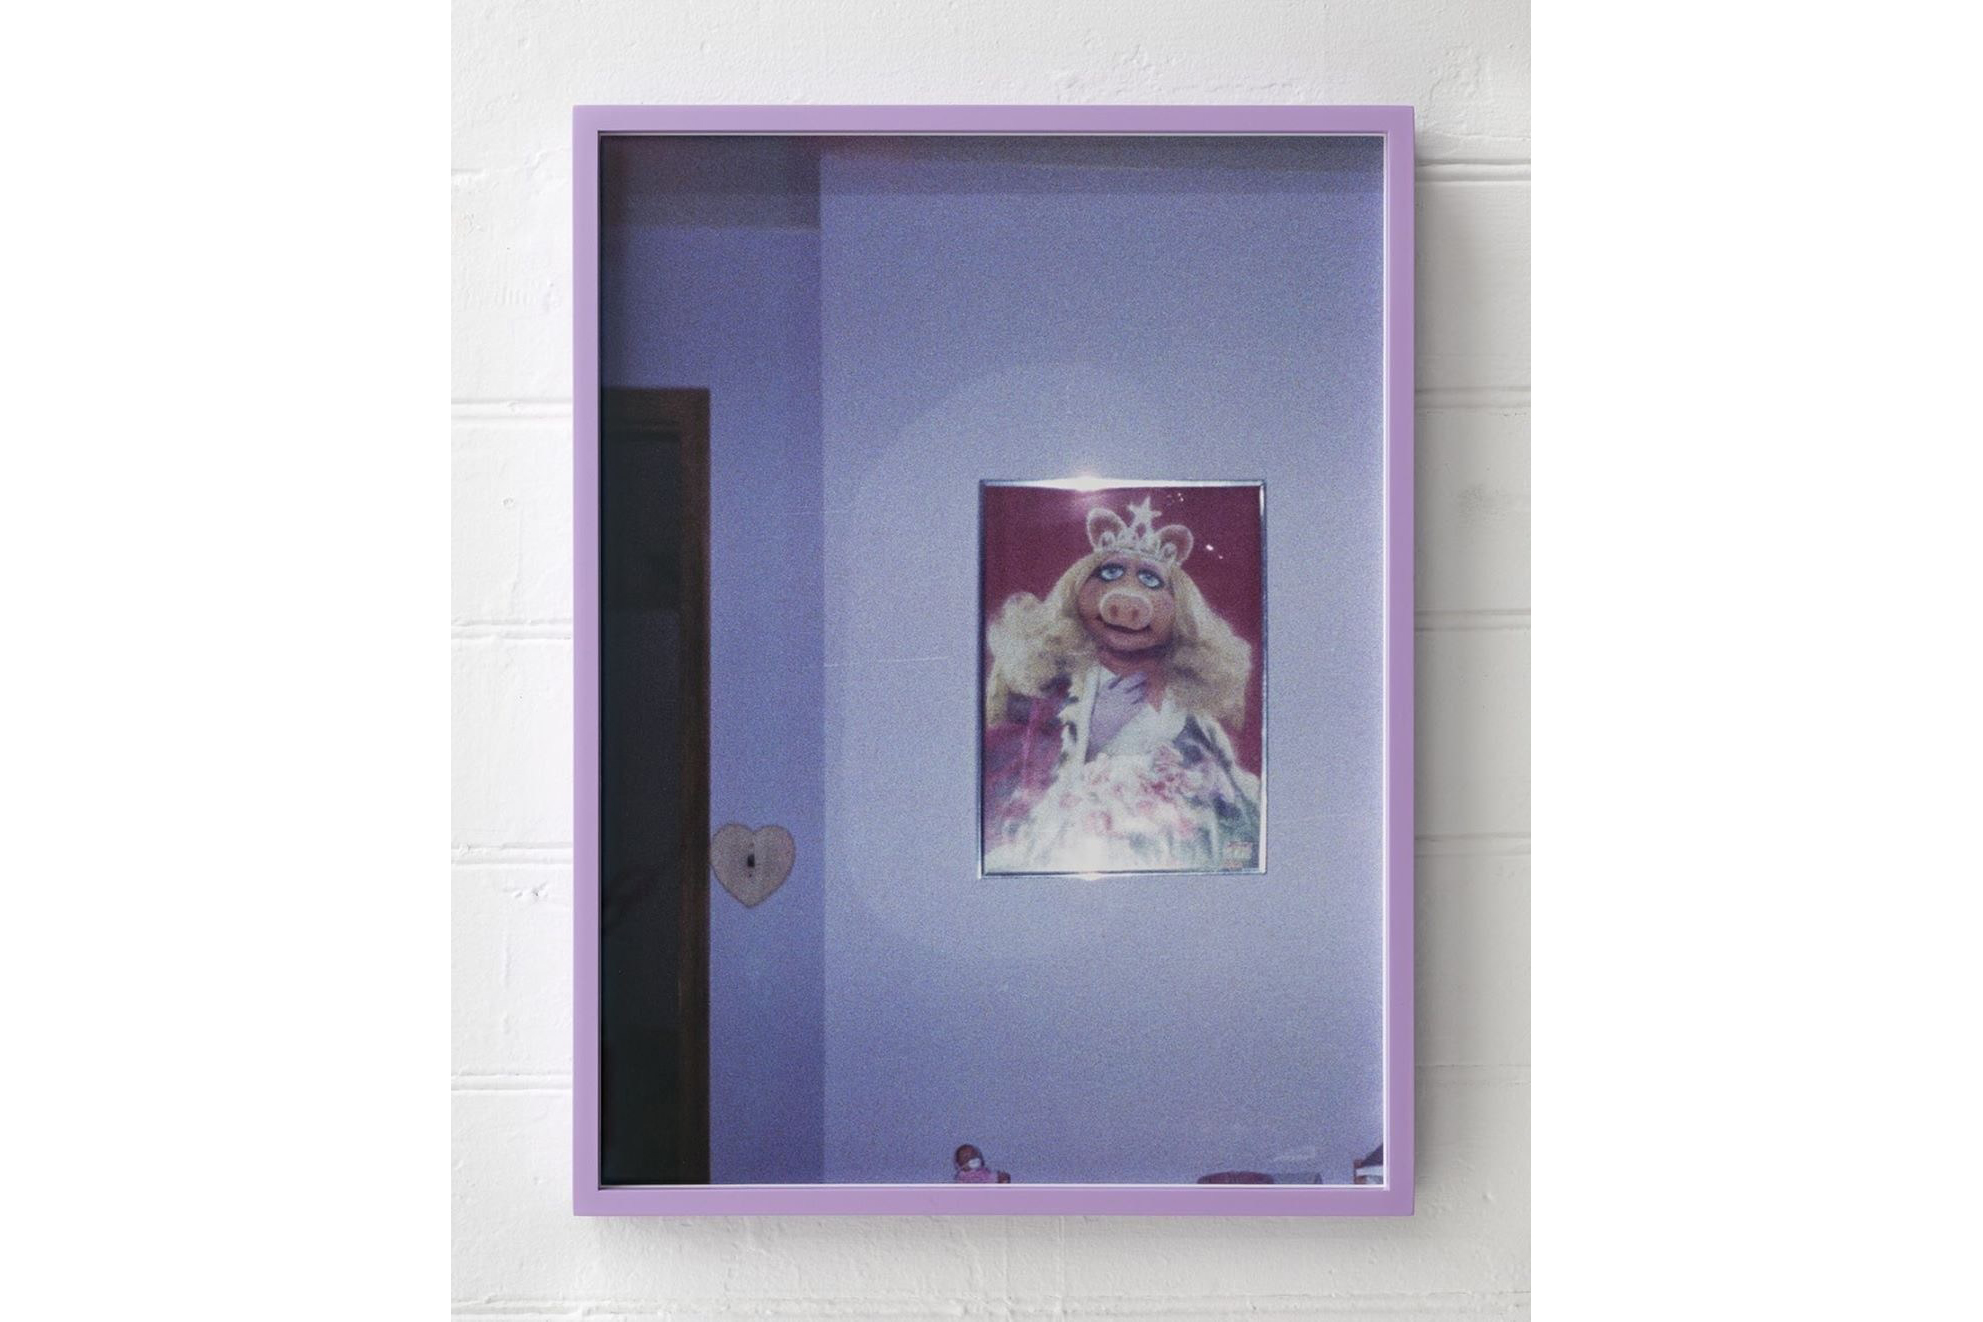 A photograph in a lilac frame hanging on a white wall. The photograph is of a poster of Miss Piggy looking glamorous with a tiara and her blonde hair styled in romantic waves. The poster is in a thin metallic frame with two highlights from the camera's flash. The framed posted hangs on a wall, with a heart-shaped light switch to its left.